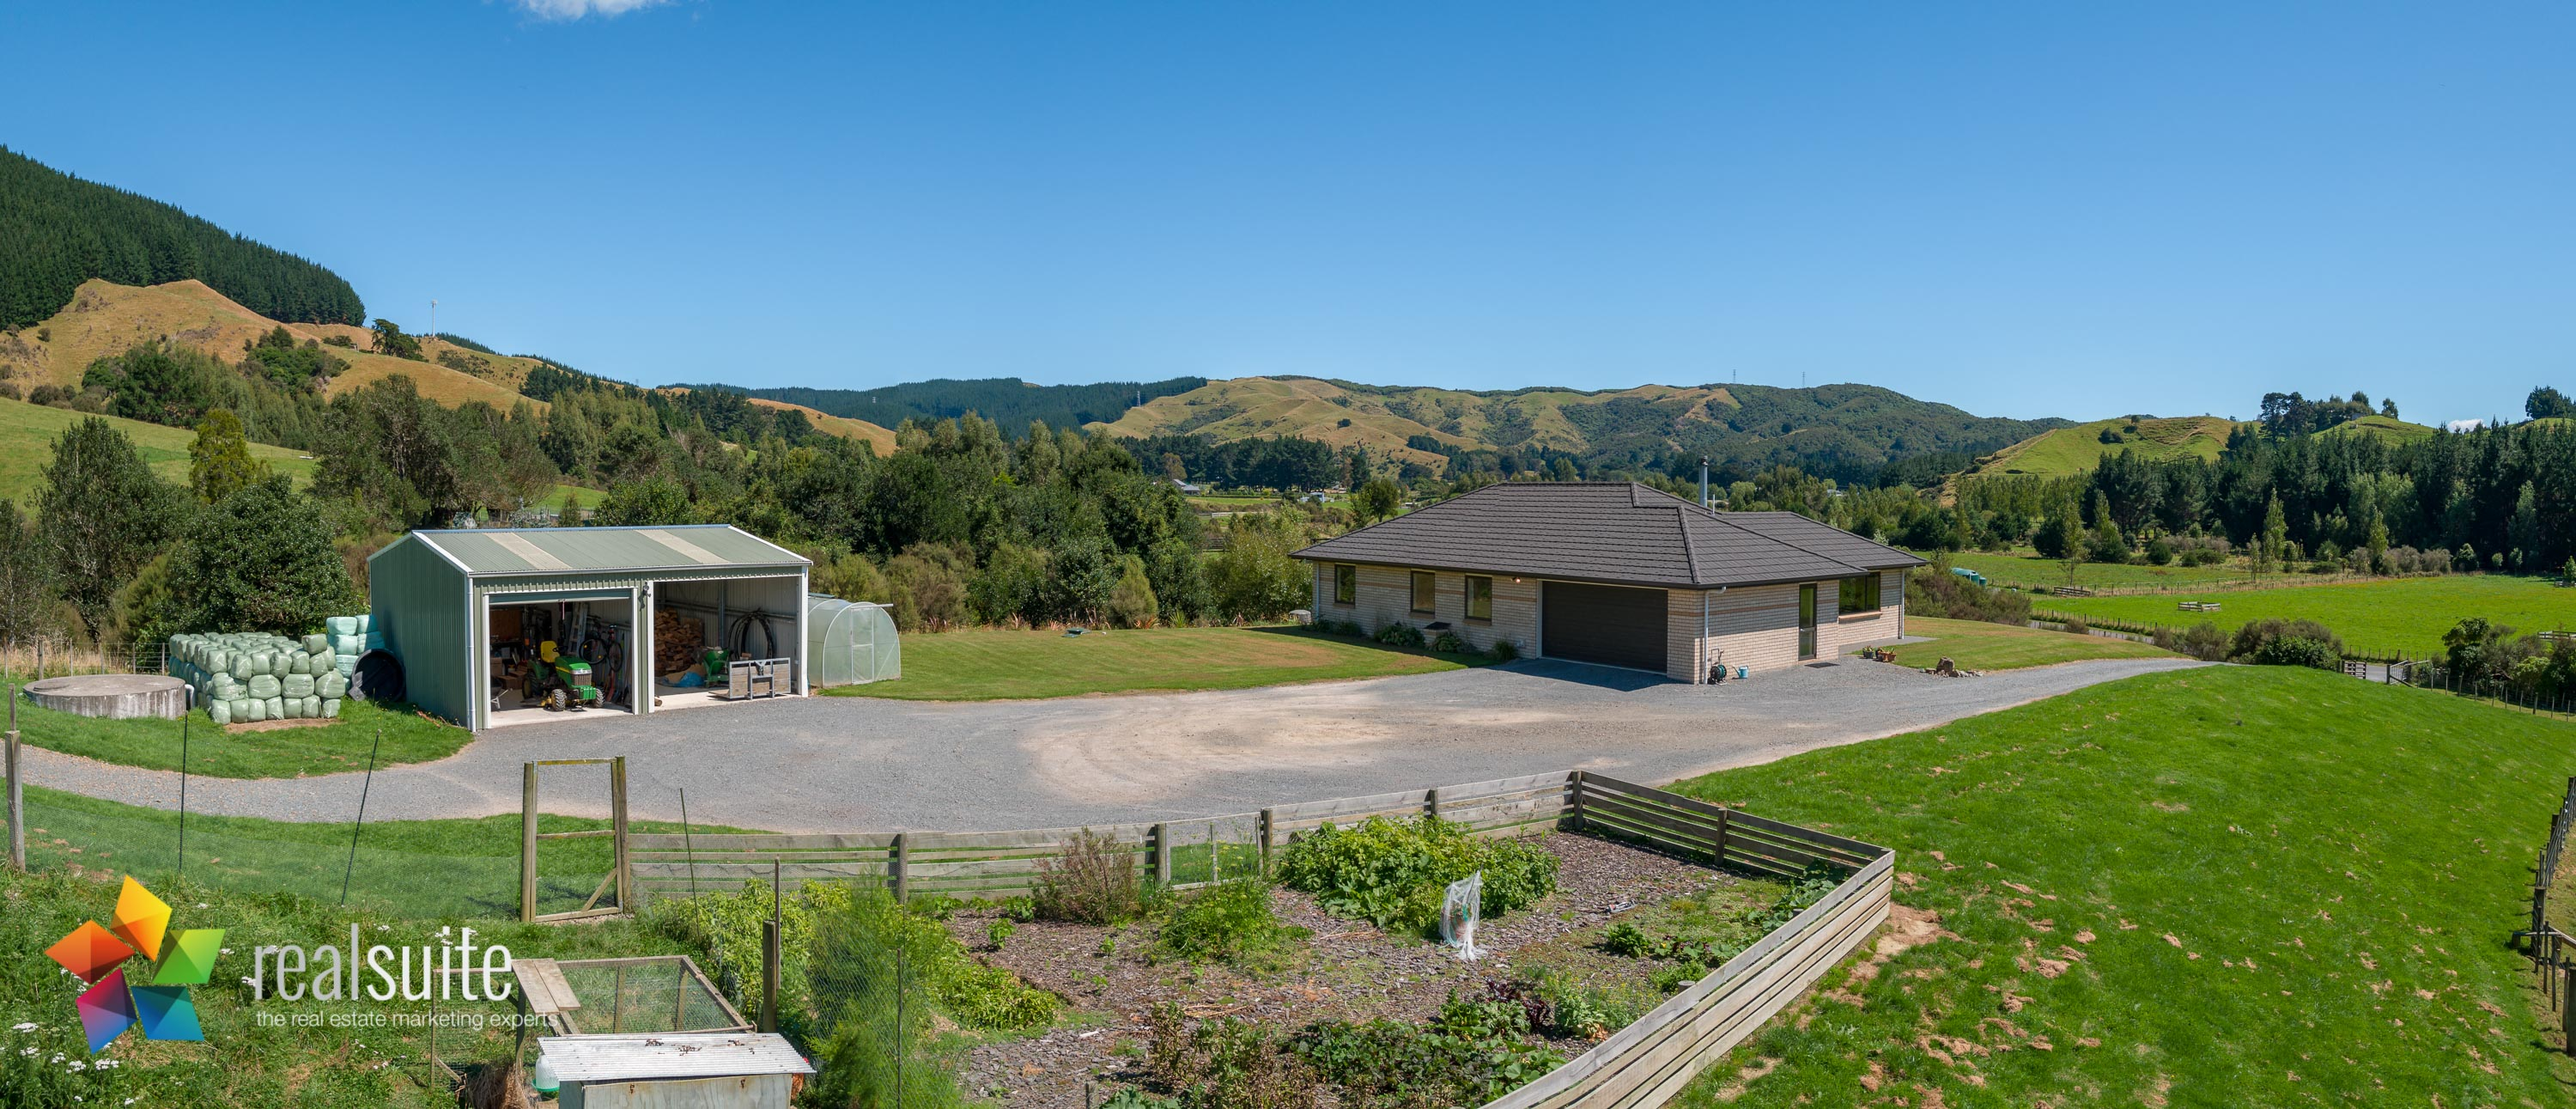 123e Johnsons Road, Whitemans Valley Aerial 0879-Pano